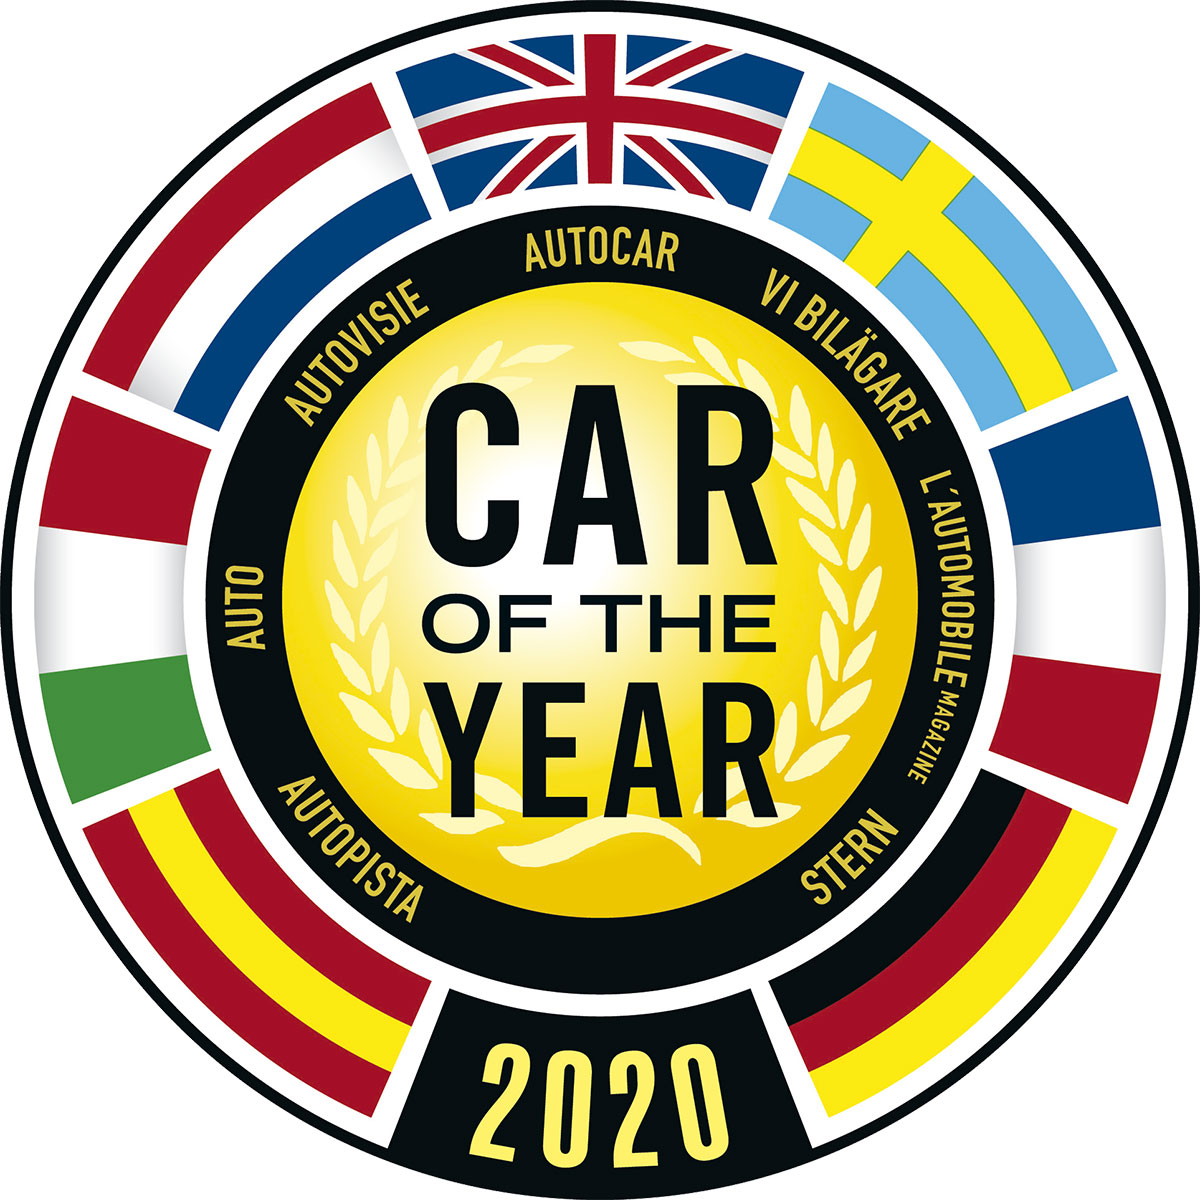 New Peugeot 208 Wins Car of The Year 2